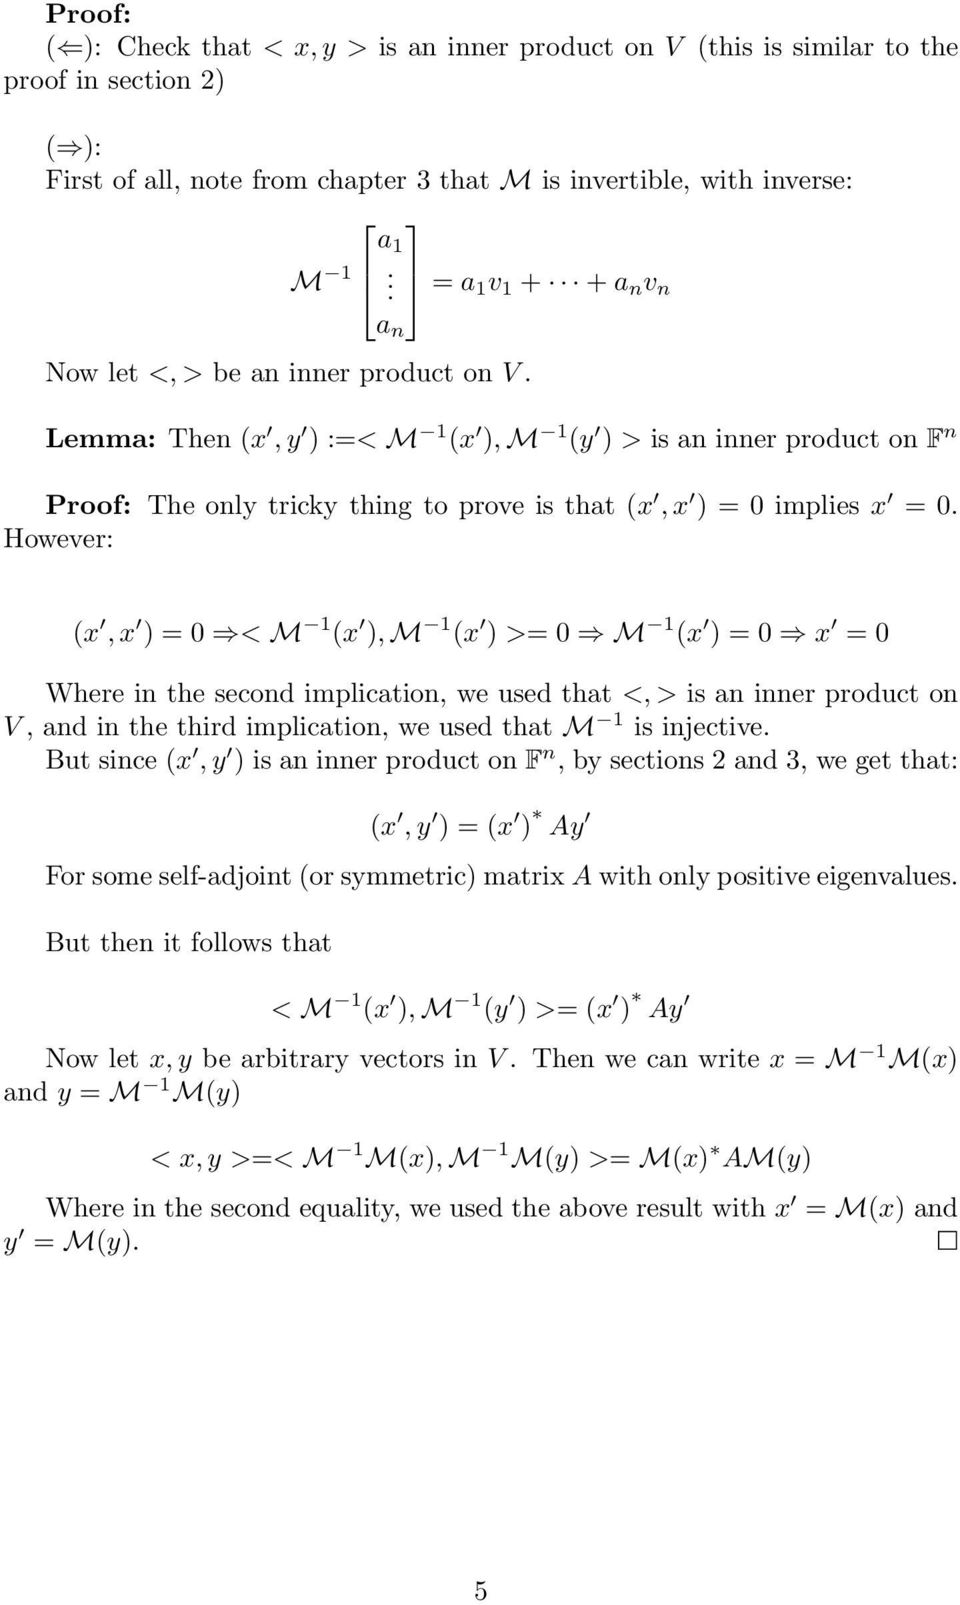 = a 1 v 1 + + a n v n Lemma: Then (x, y ) :=< M 1 (x ), M 1 (y ) > is an inner product on F n Proof: The only tricky thing to prove is that (x, x ) = 0 implies x = 0.